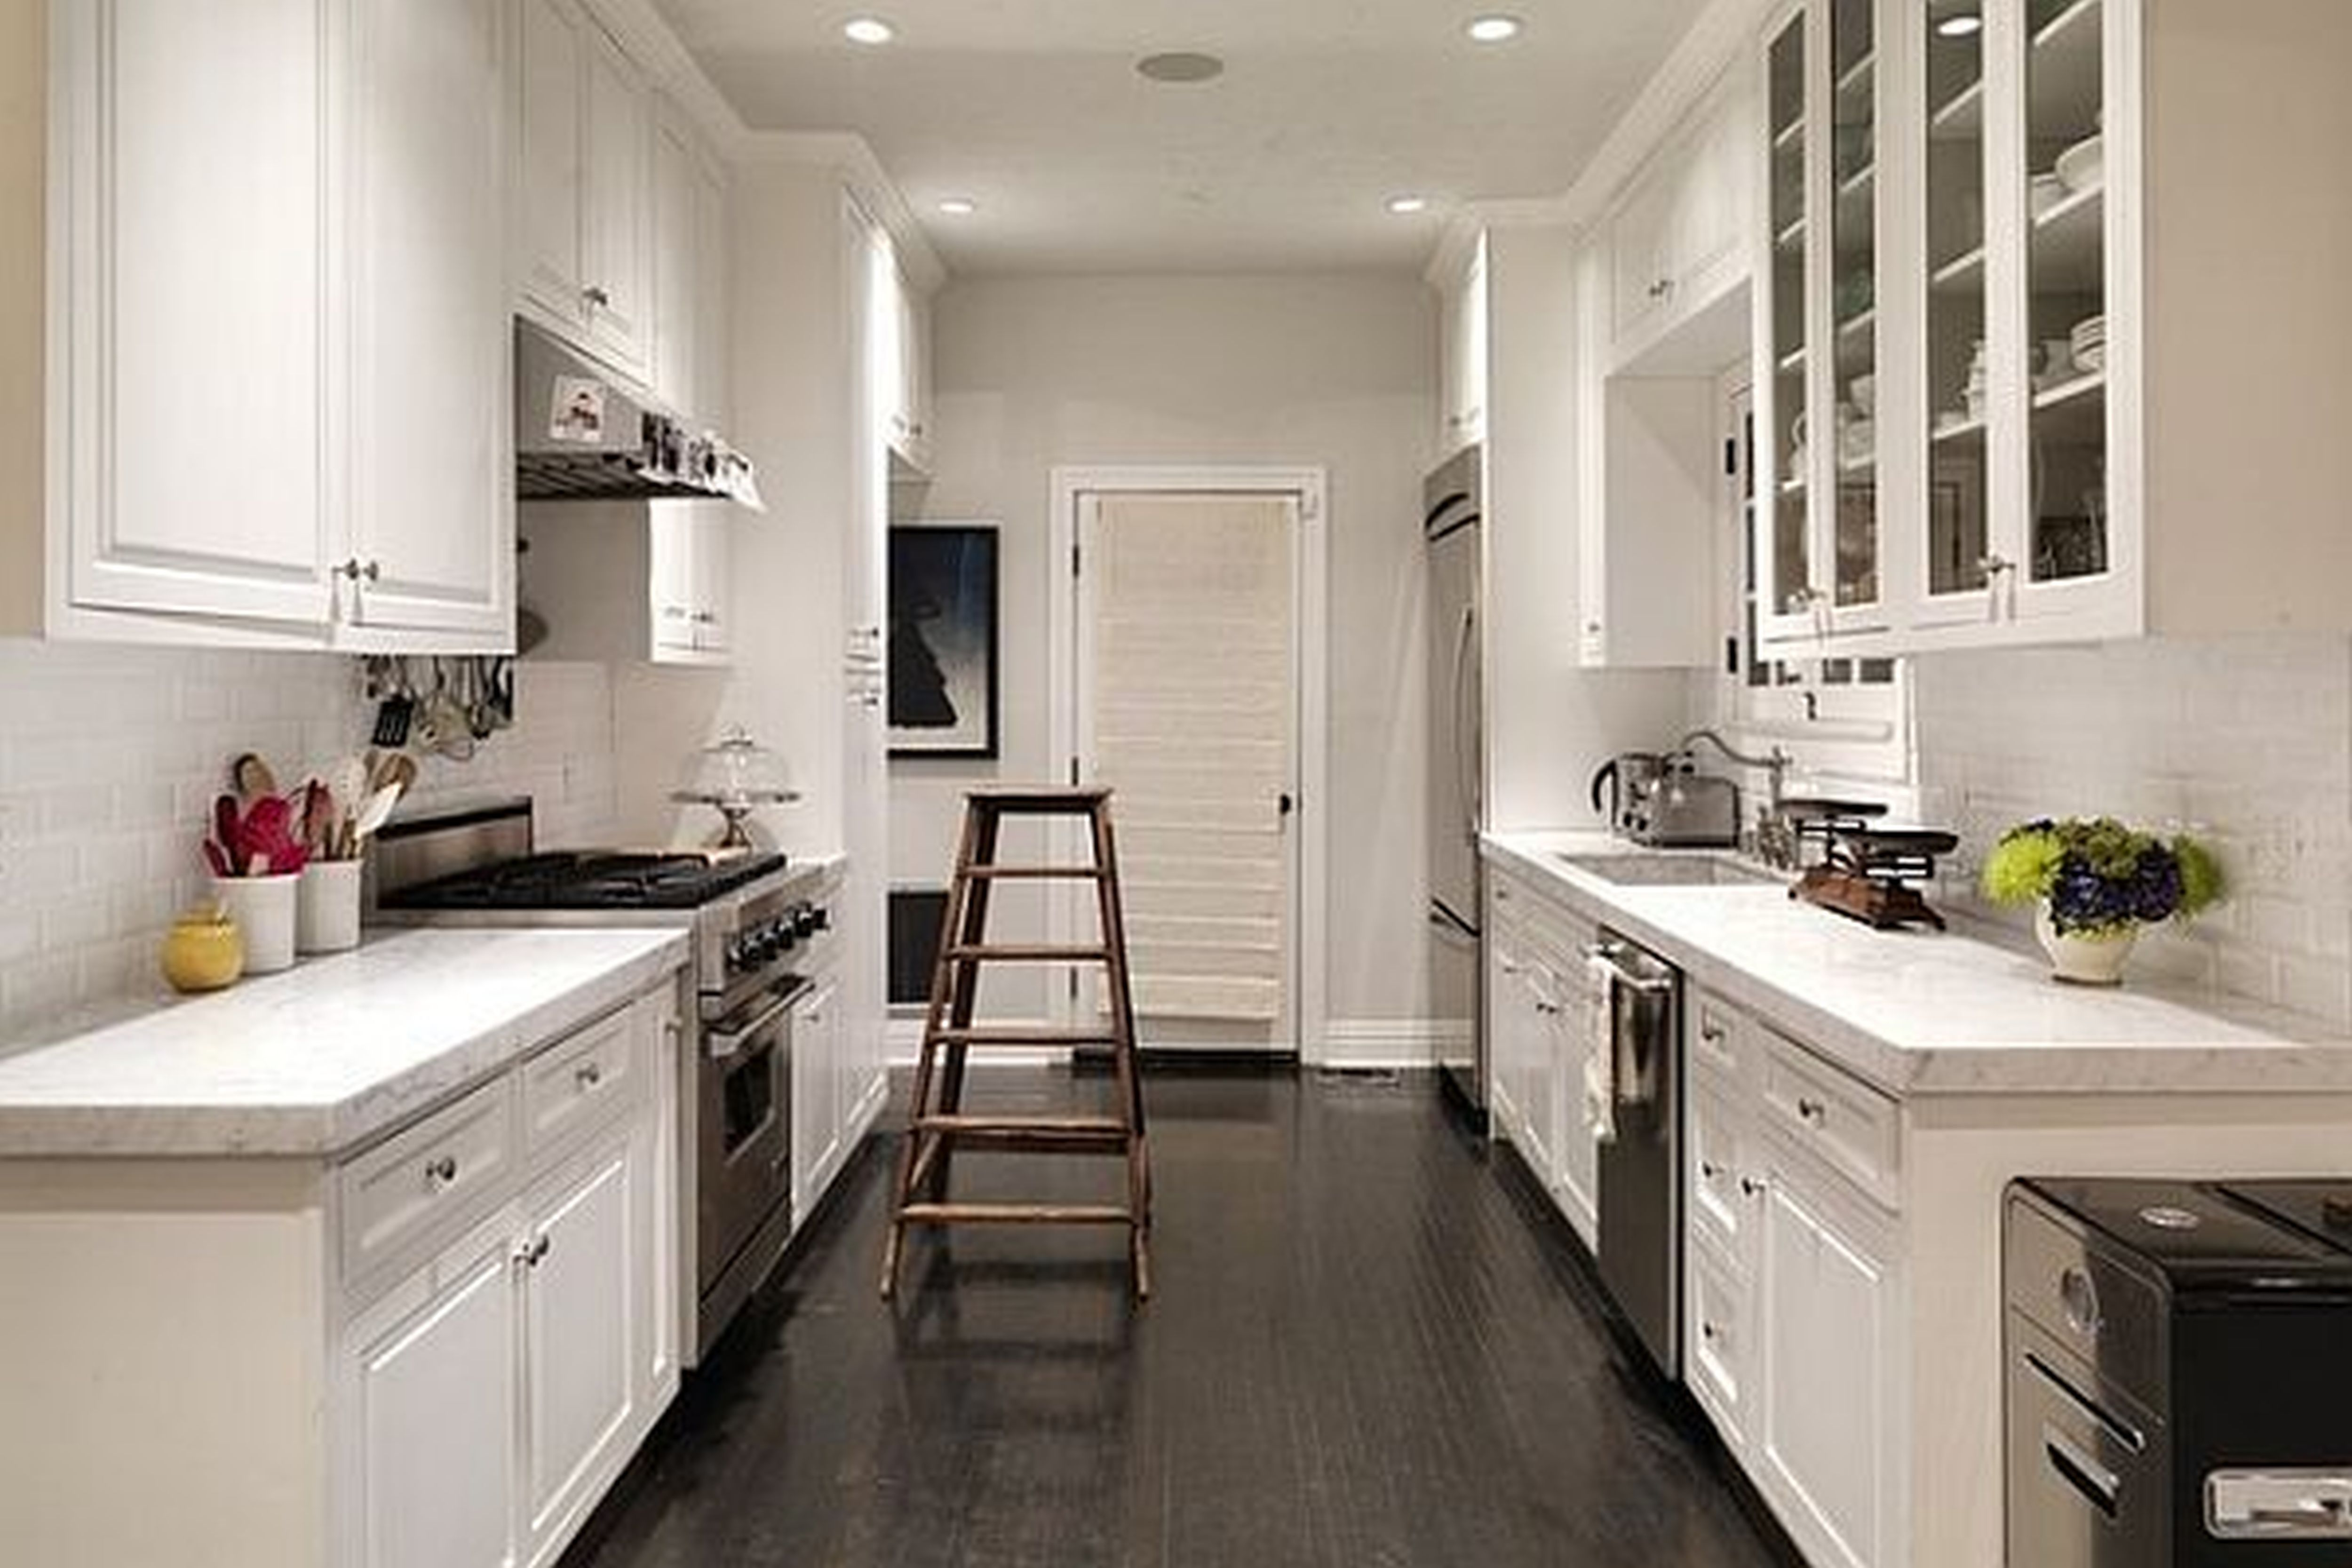 37 Examples Of Galley Kitchen Lighting That Looks Very Impressive Secondary Focal Points And Accents Pinterest Kitchens Small